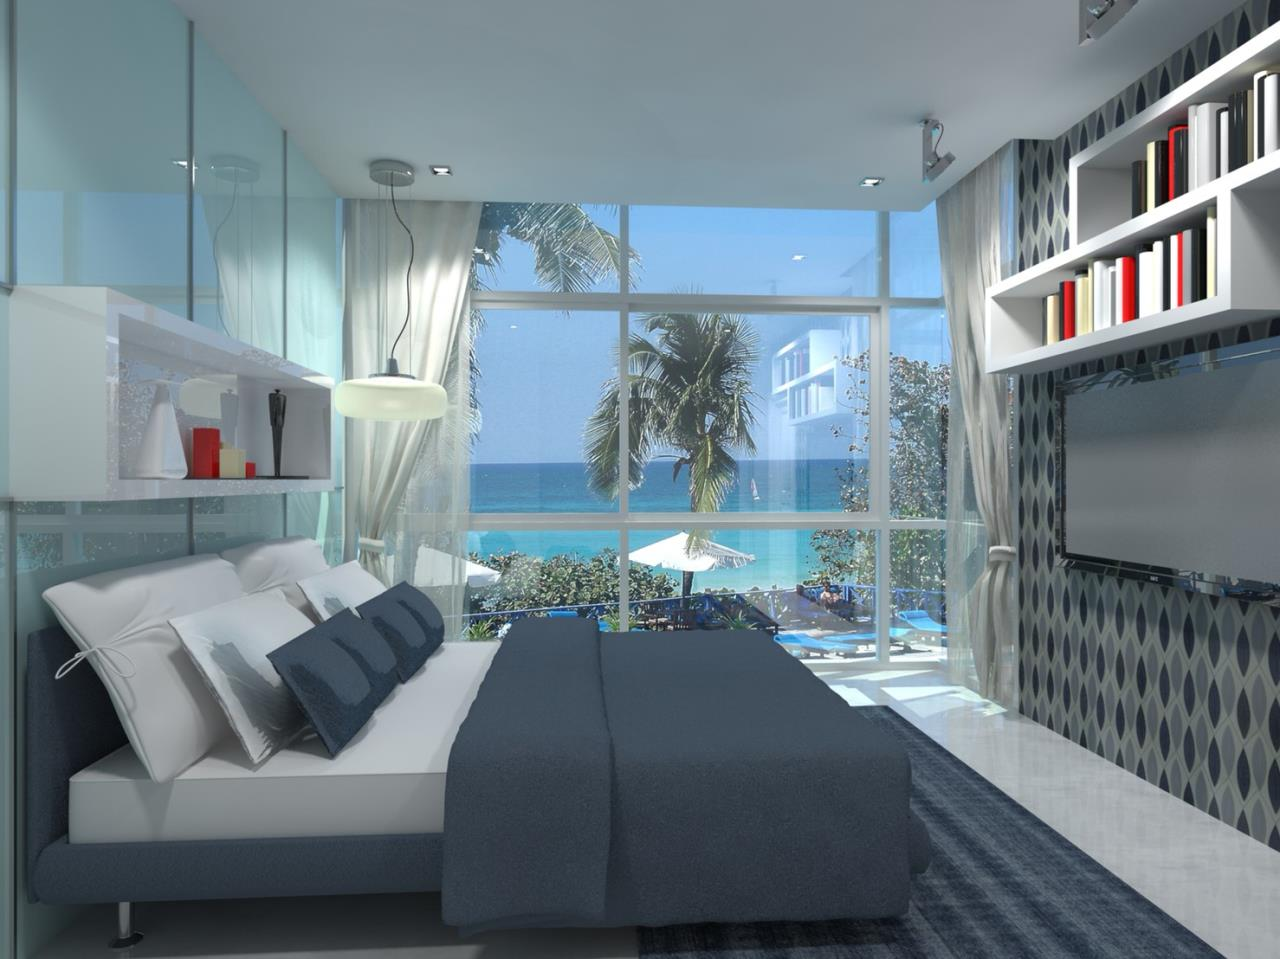 Signature Realty ( Thailand ) Co Ltd Agency's Furnished 1bedroom 46 sq.m condo with jacuzzi floor 2-10 at The Grand Jomtein Beach Pattaya 20